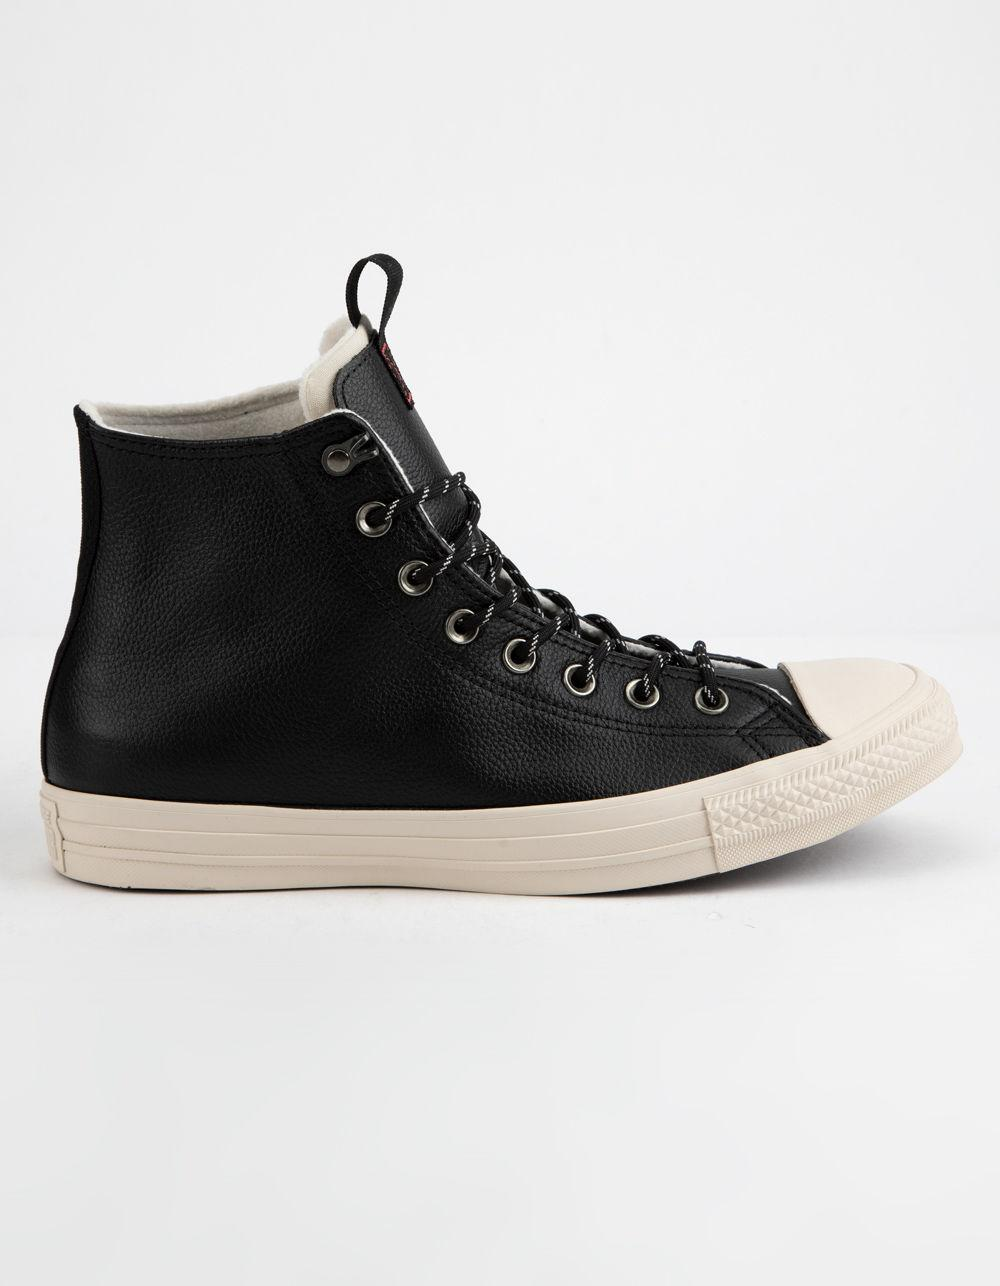 Lyst - Converse Chuck Taylor All Star Leather Black   Driftwood High ... d31d63213